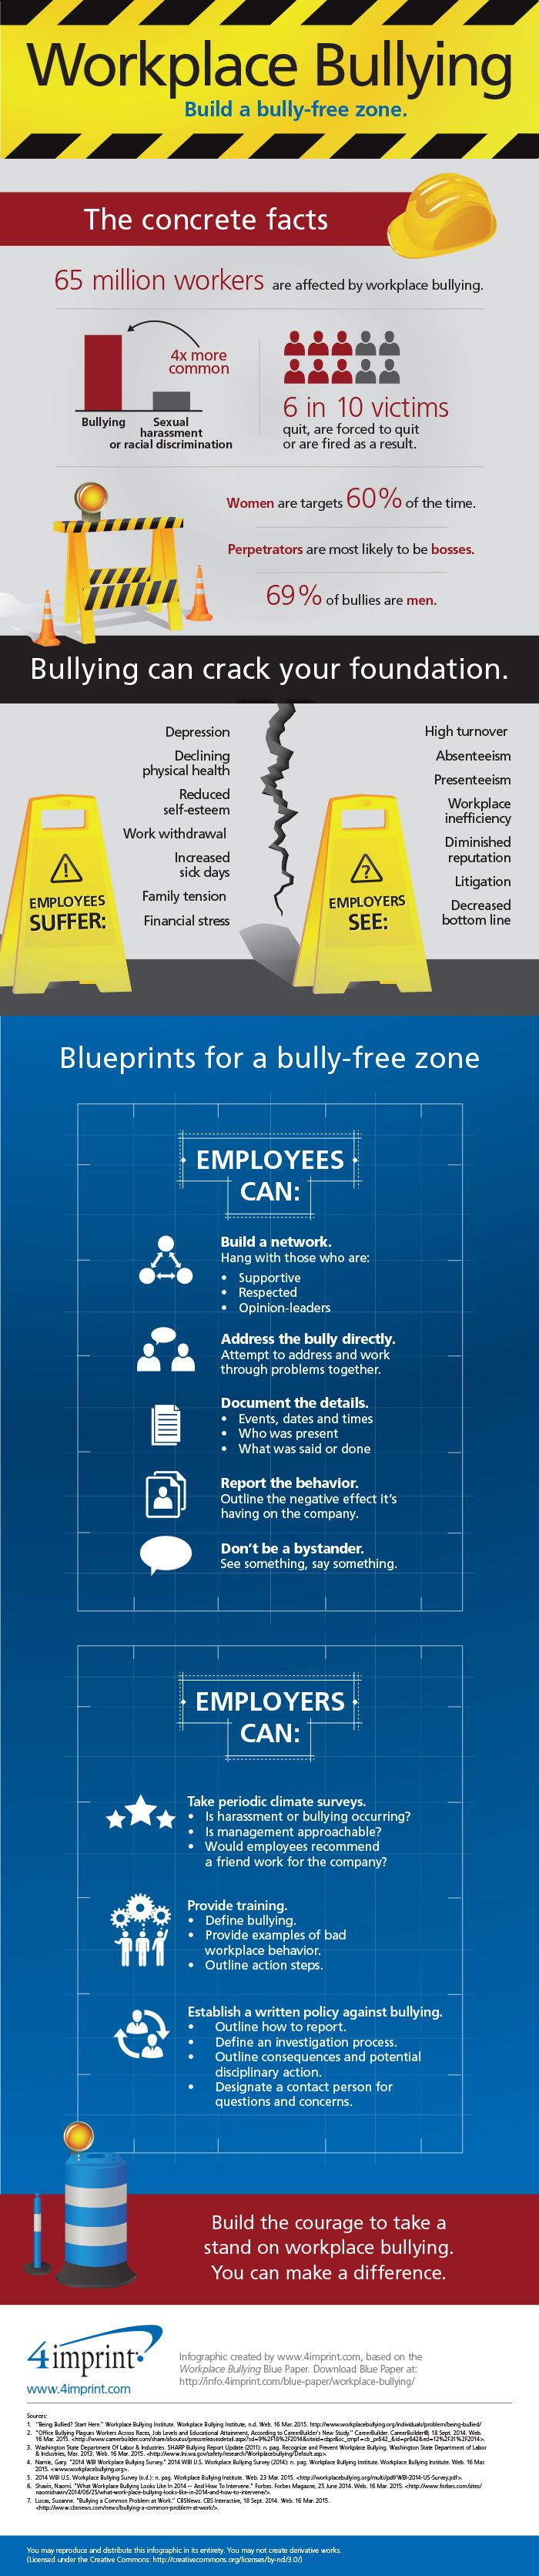 Workplace bullying is more common than many think—in fact, it affects more than 65 million workers in the United States alone.